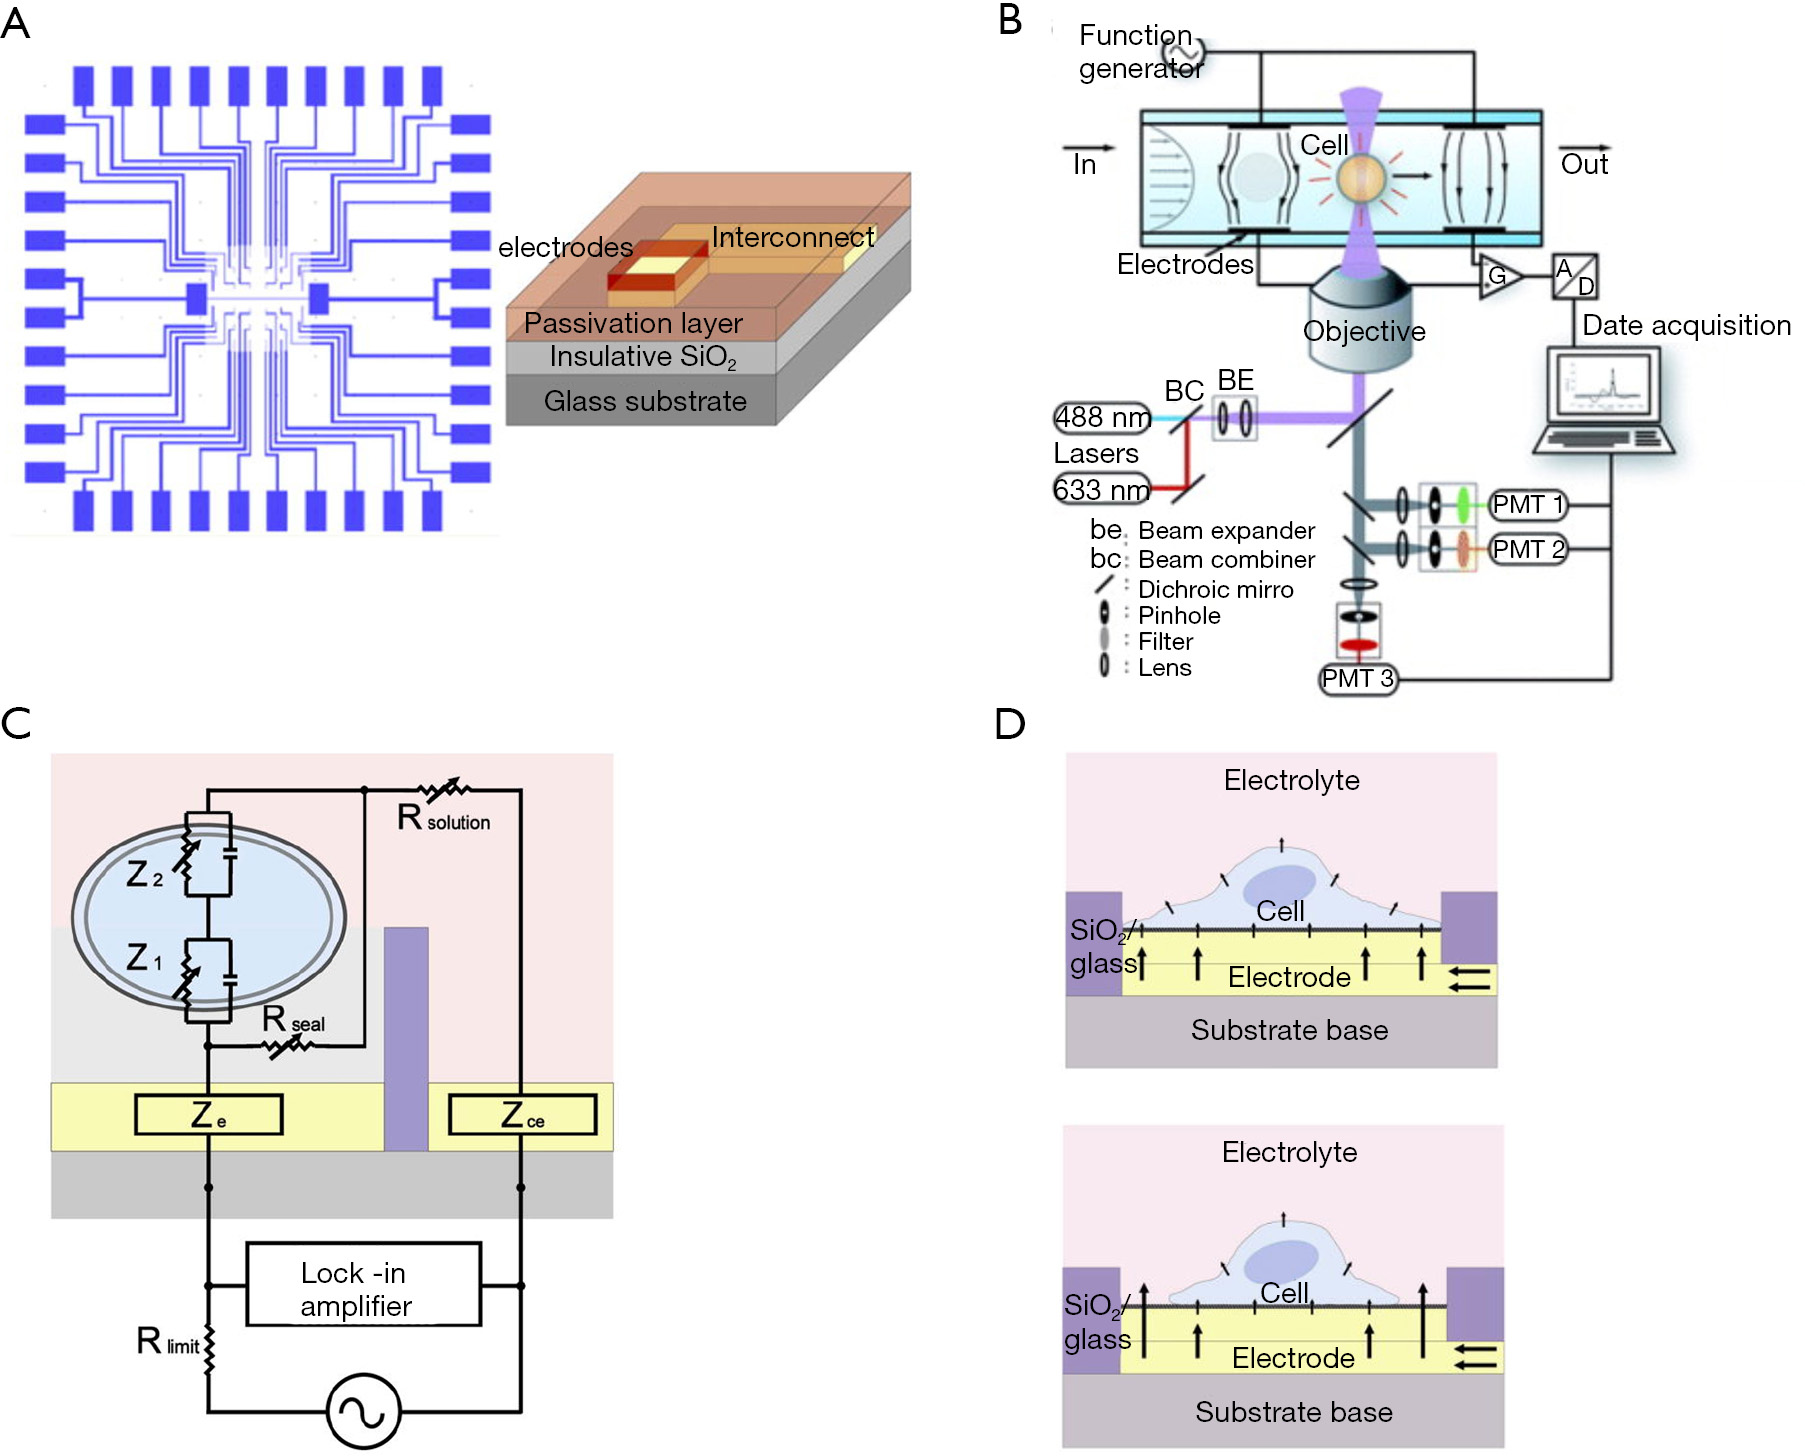 Organs-on-chip monitoring: sensors and other strategies - Kilic